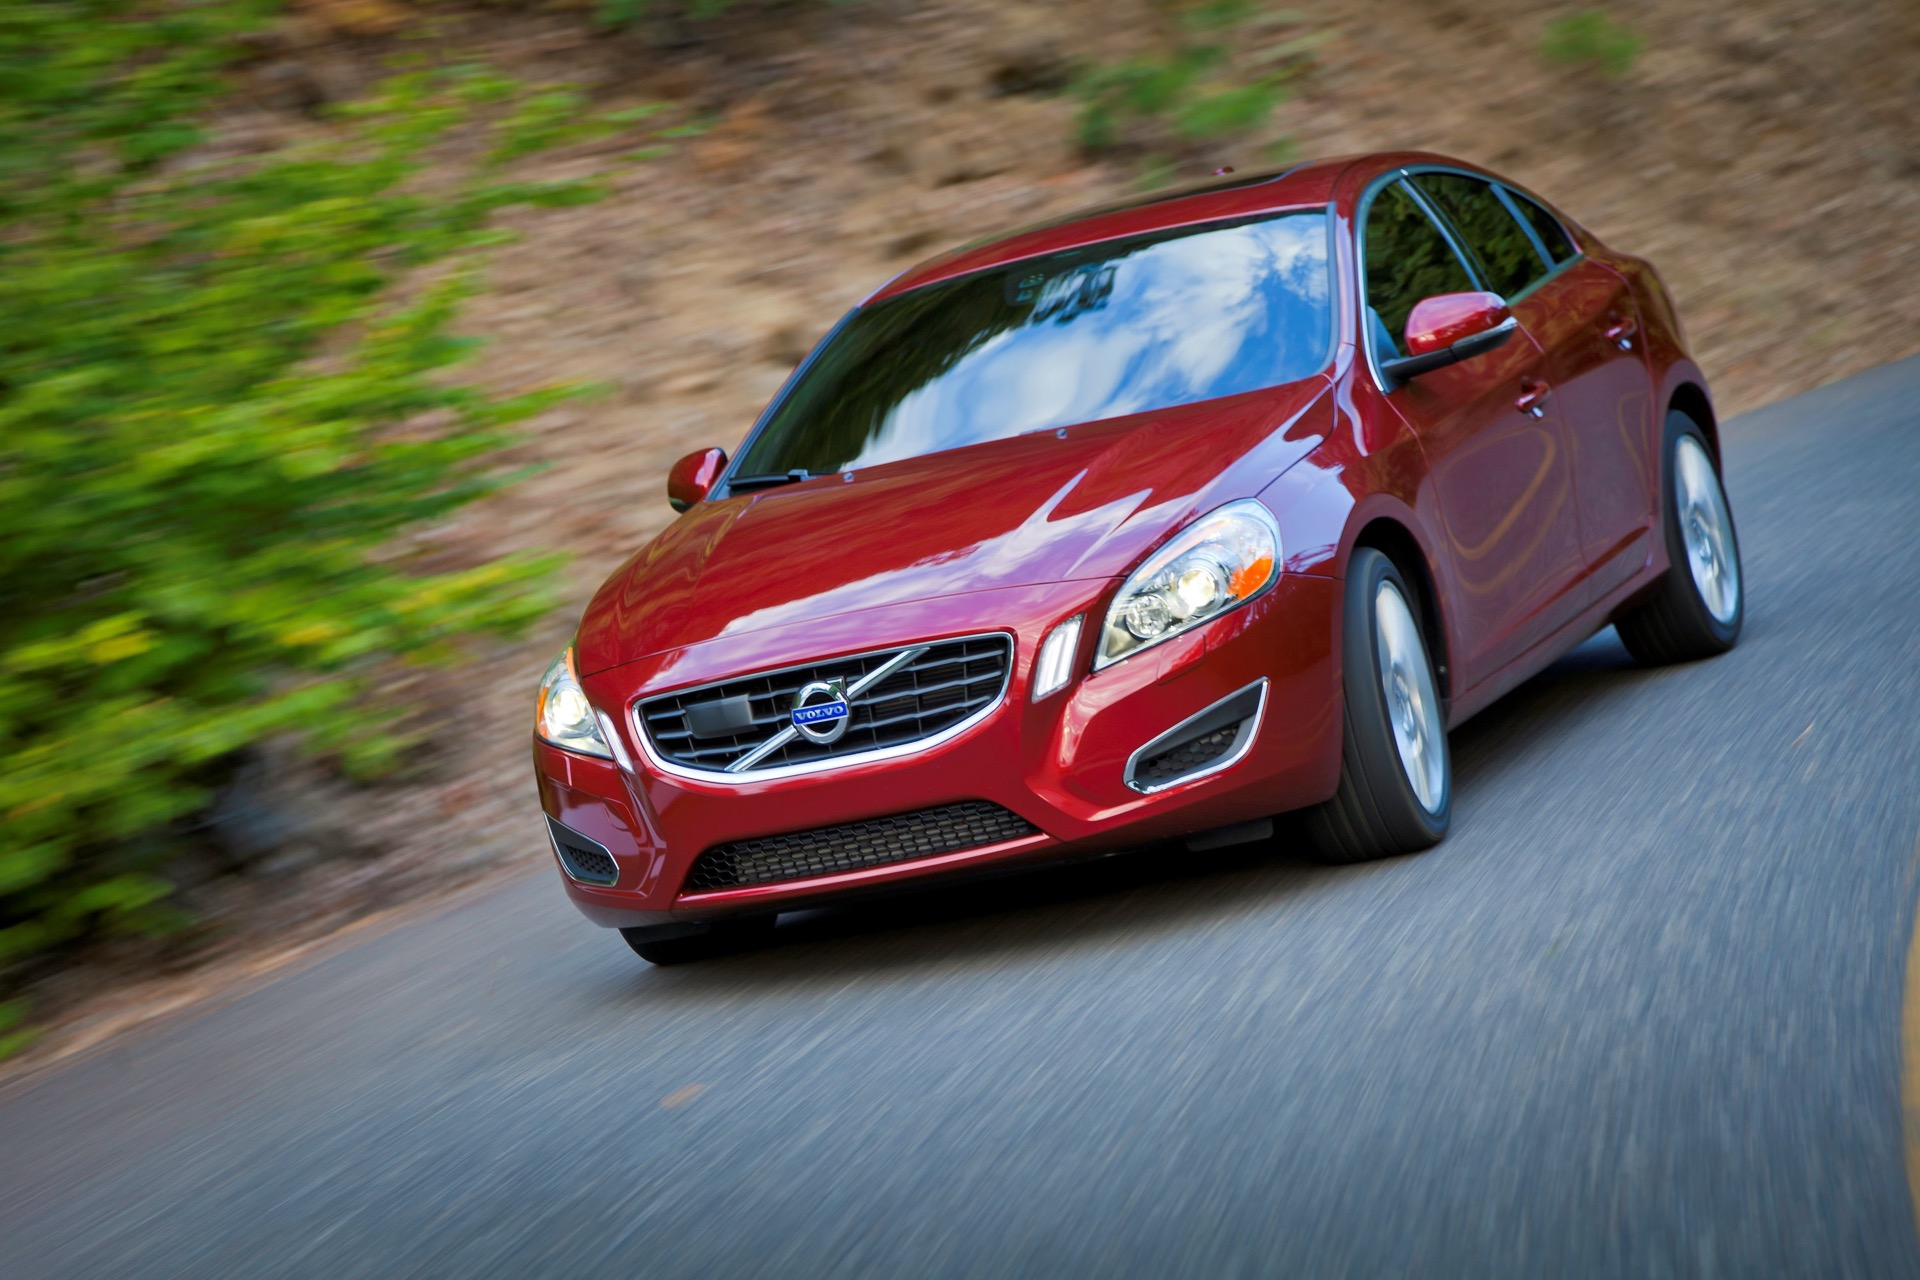 S60 T6 Awd Driving Action09 -  Volvo